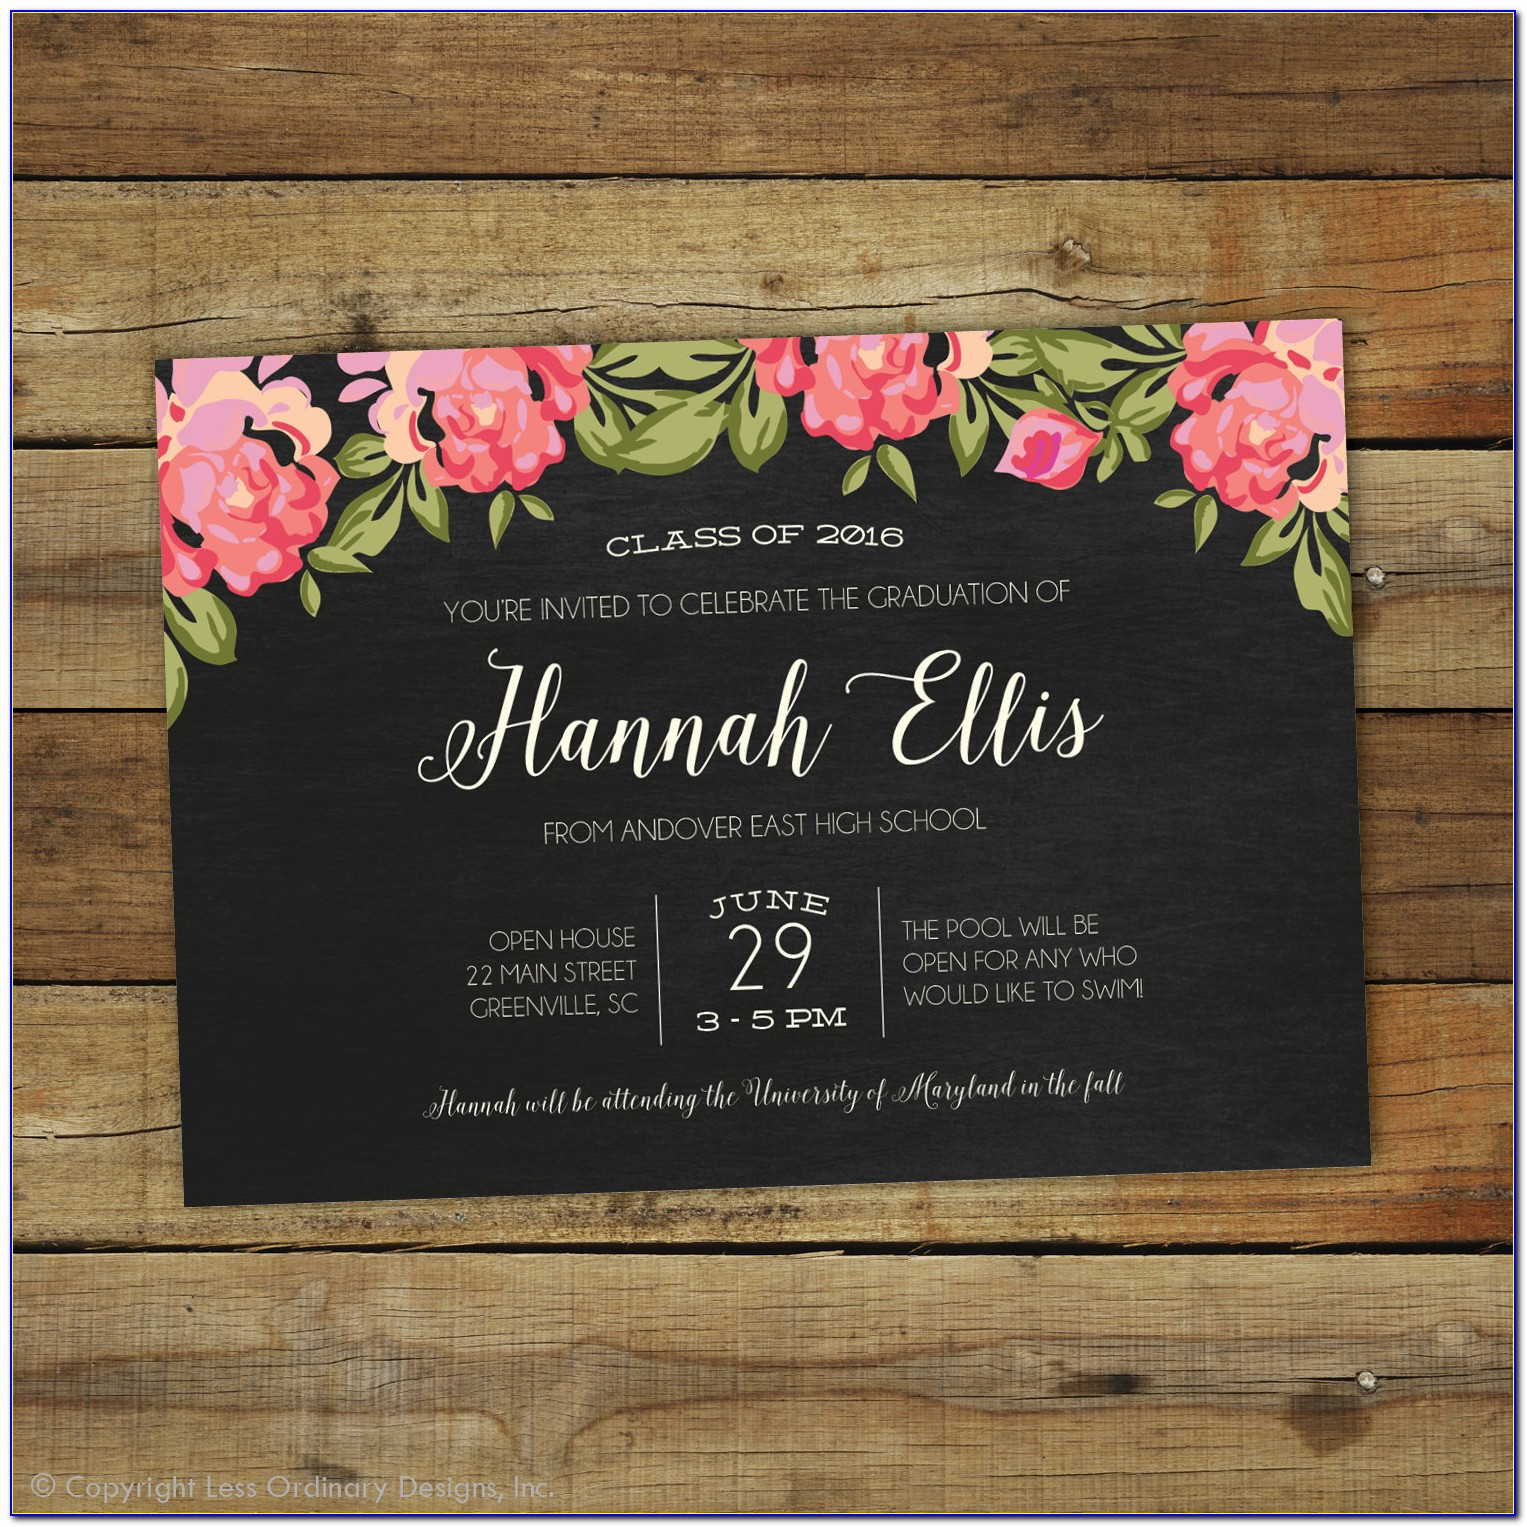 Graduation Invitation Maker Free Online